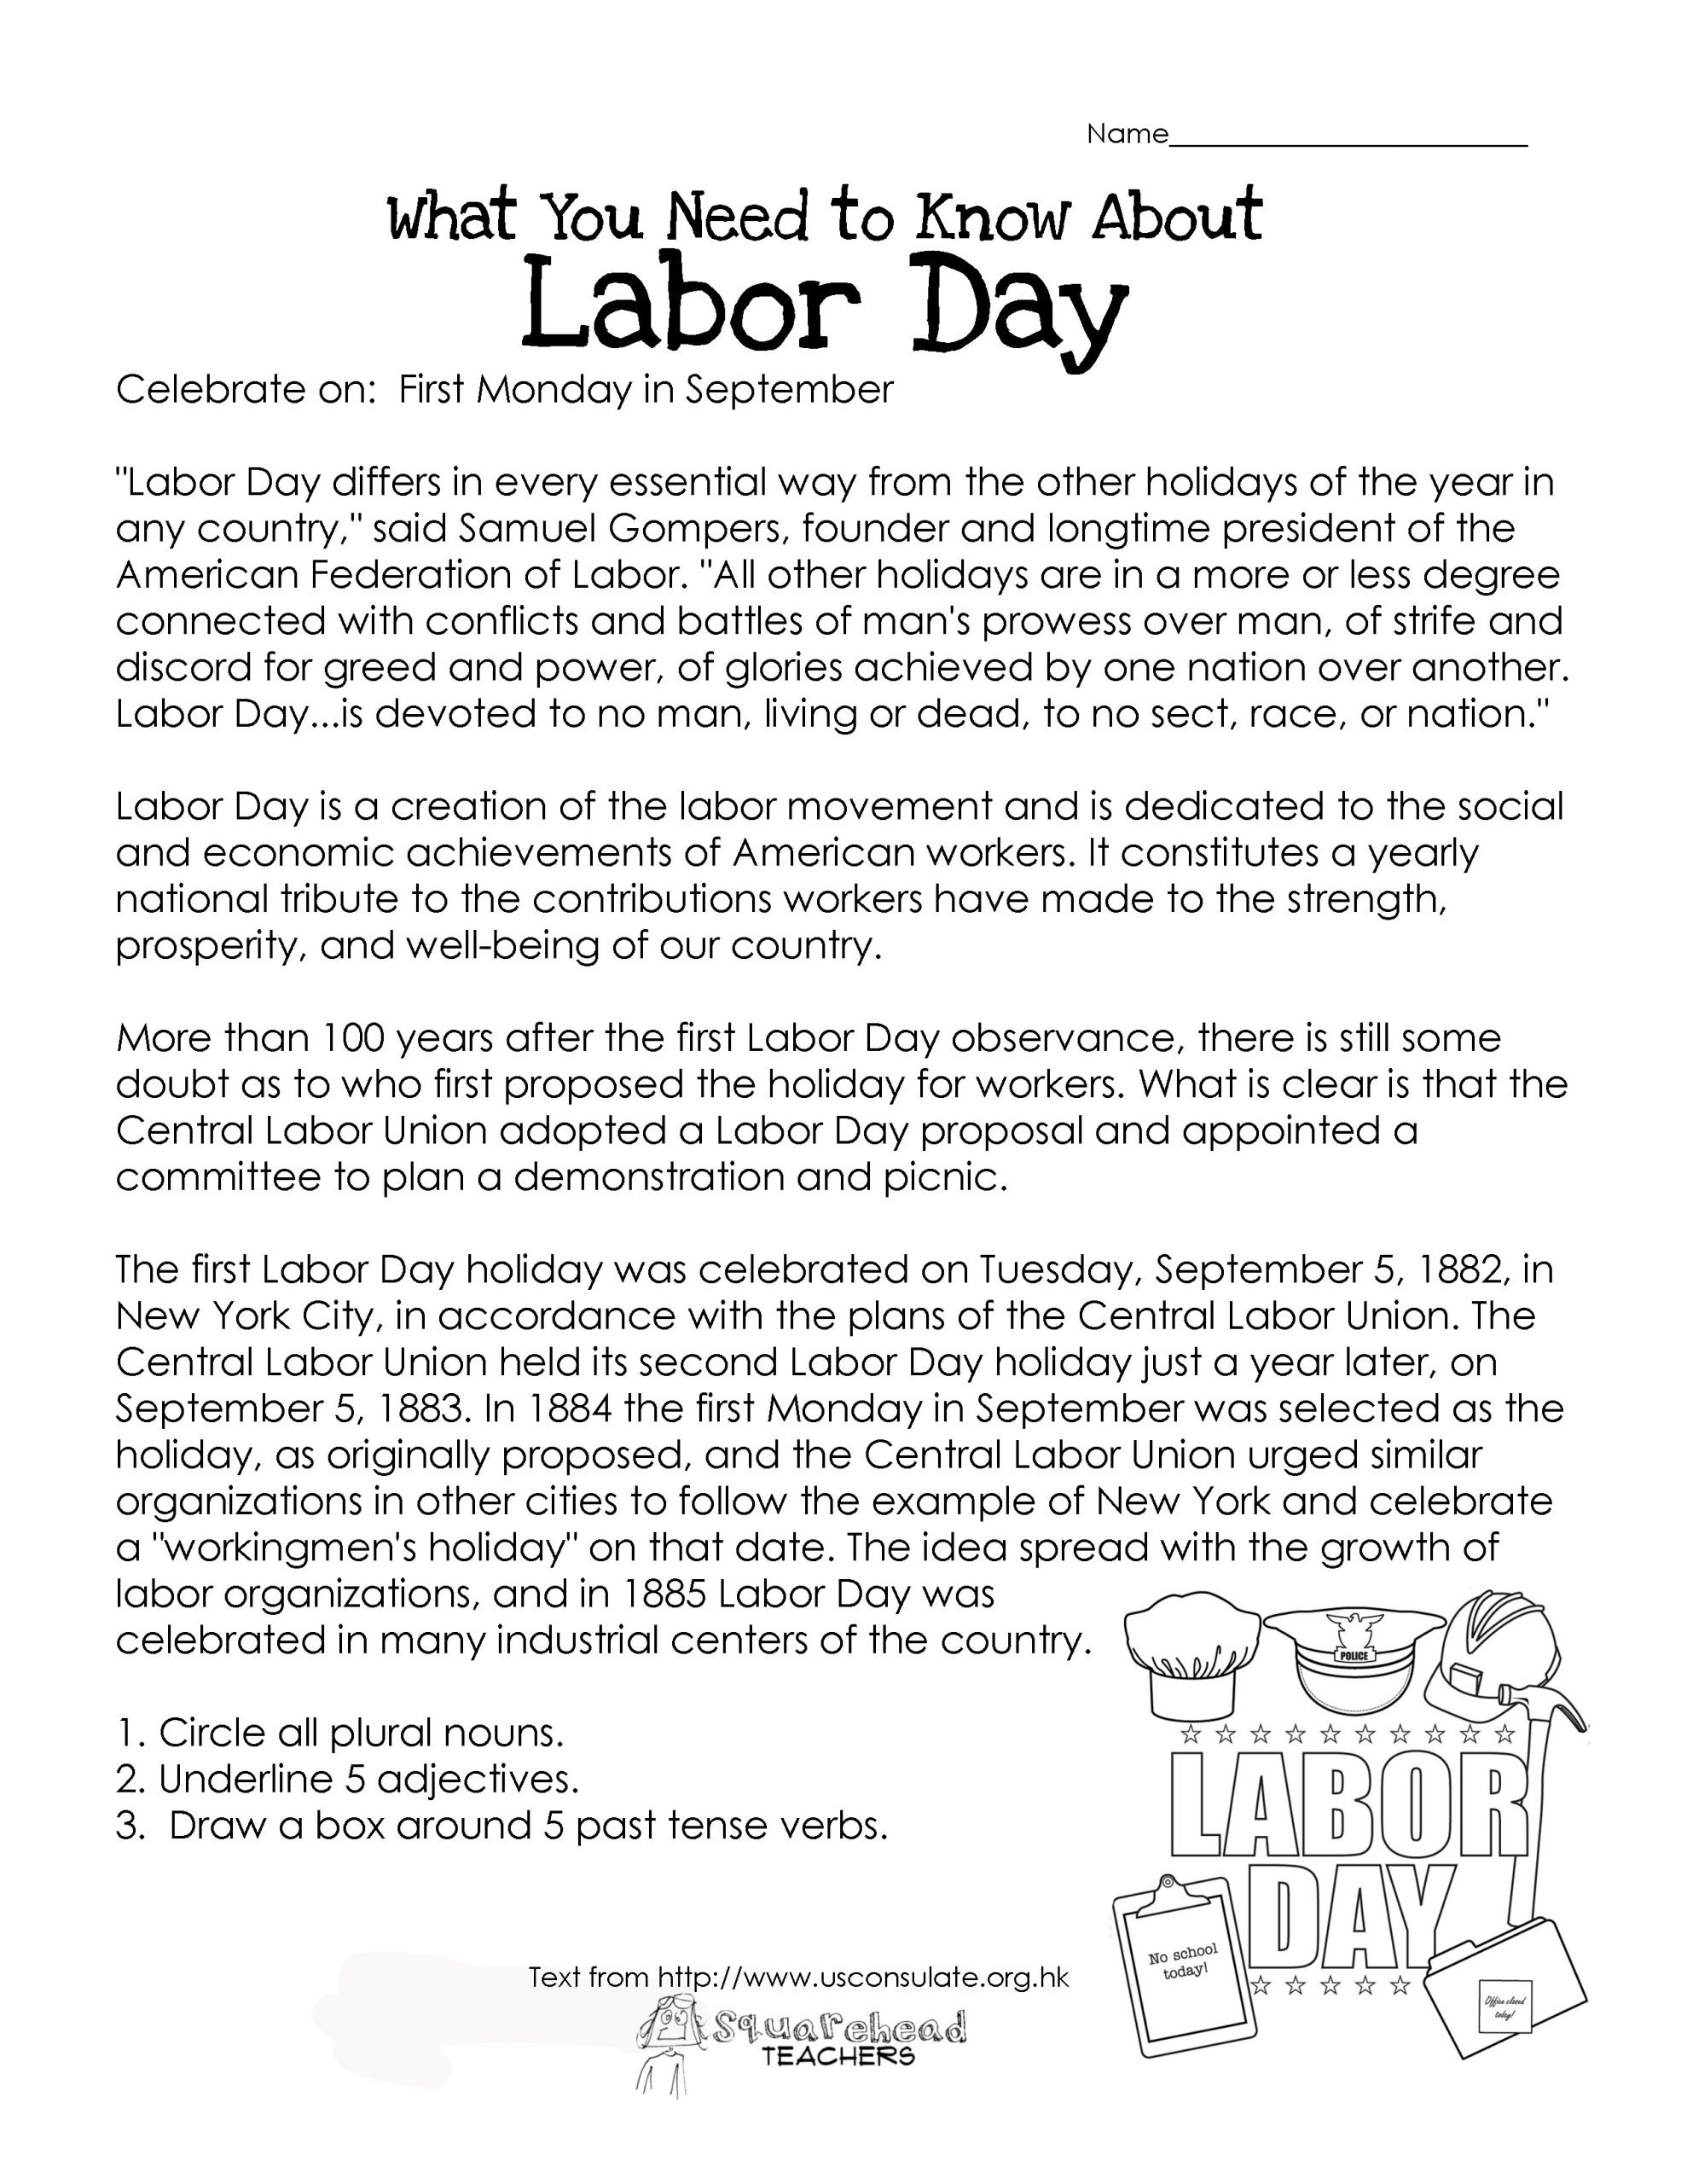 Memorial Day Worksheets for Kids Labor Day What You Need to Know Free Worksheet